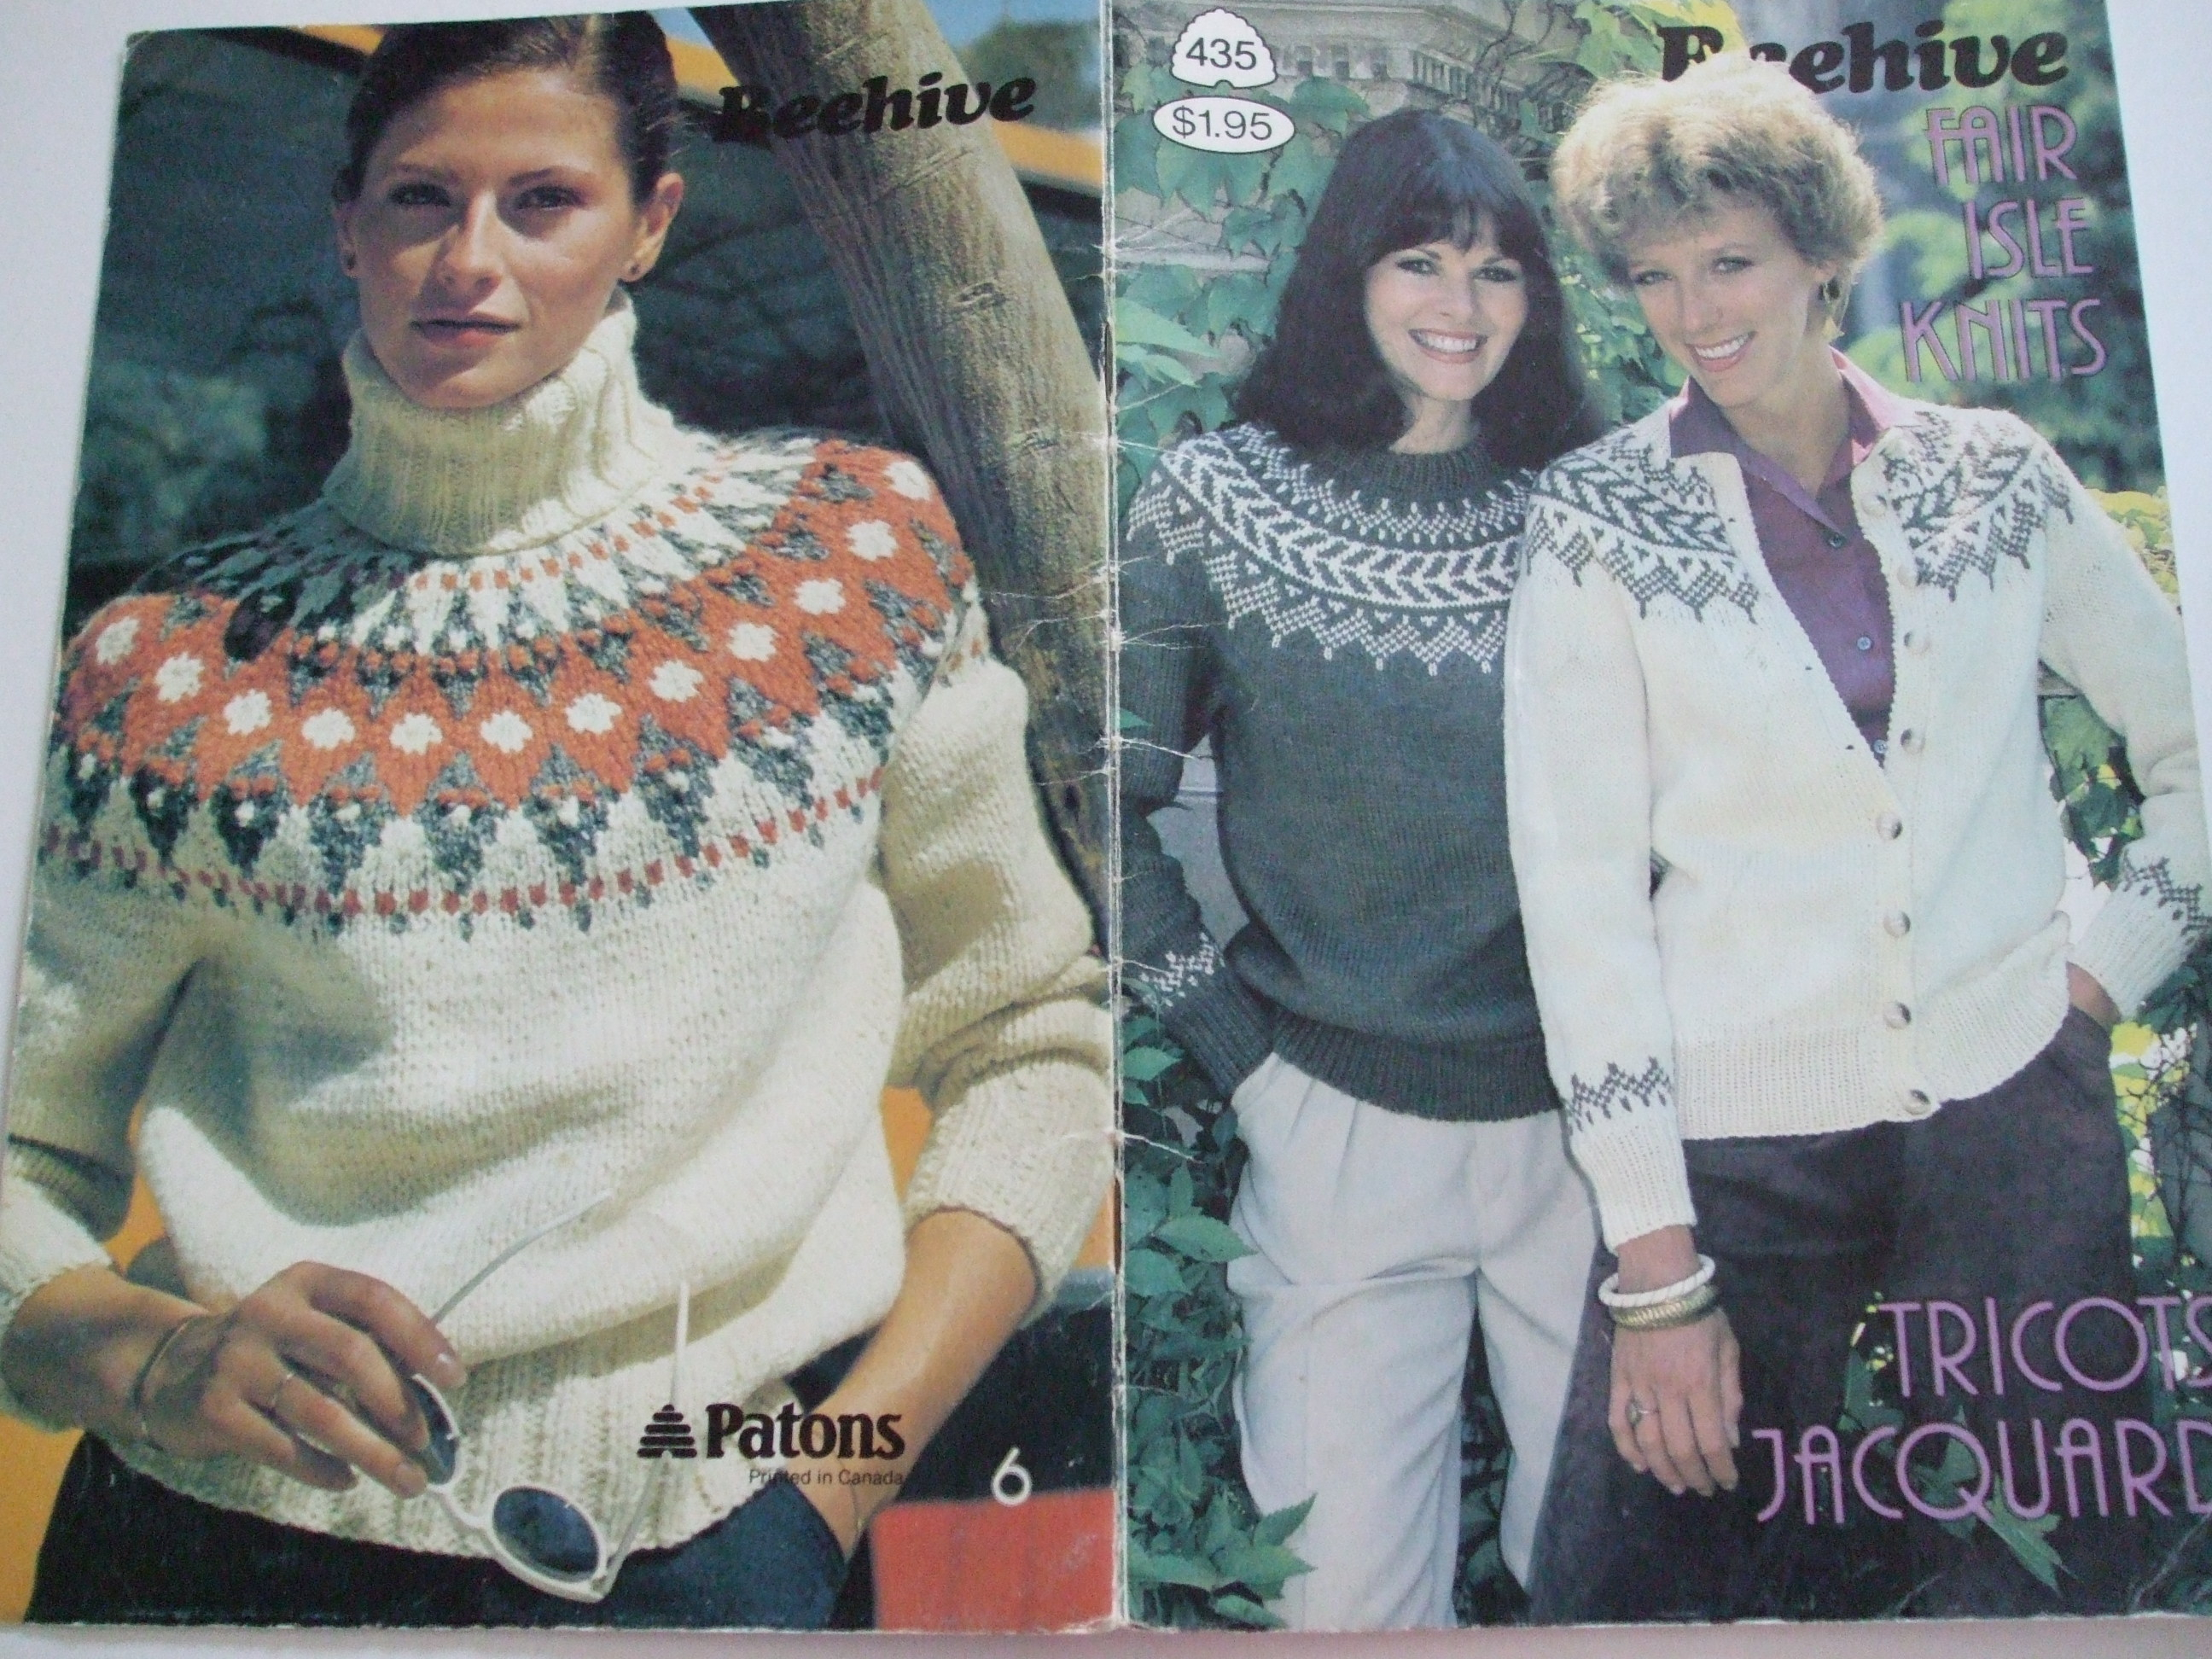 Knitting Patterns For Women 435 Fair Isle Knits Knitting Patterns Tricots Jacquard Beehive Women